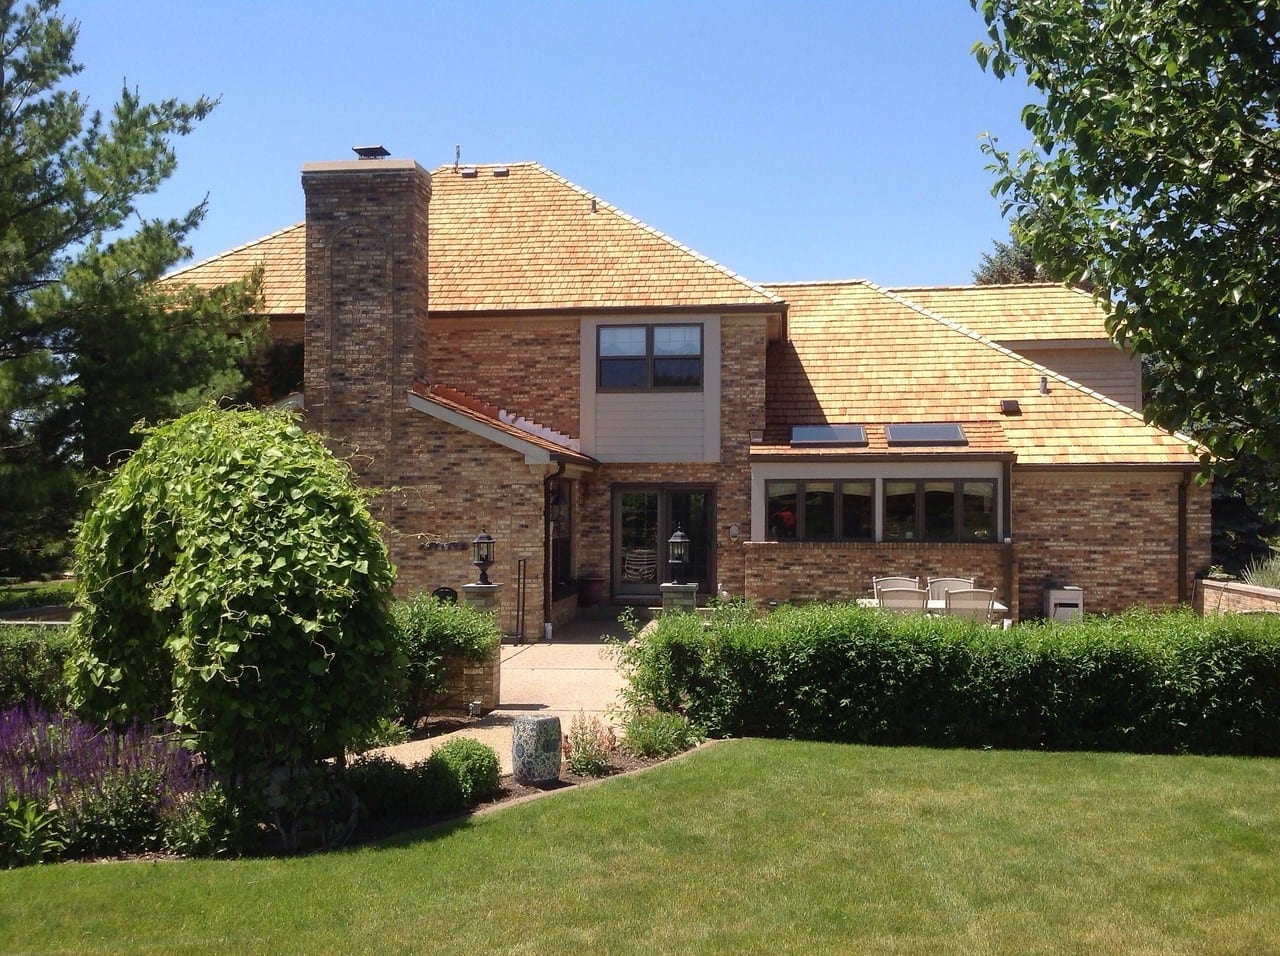 You want good results - so read reviews when picking your roofing contractor!